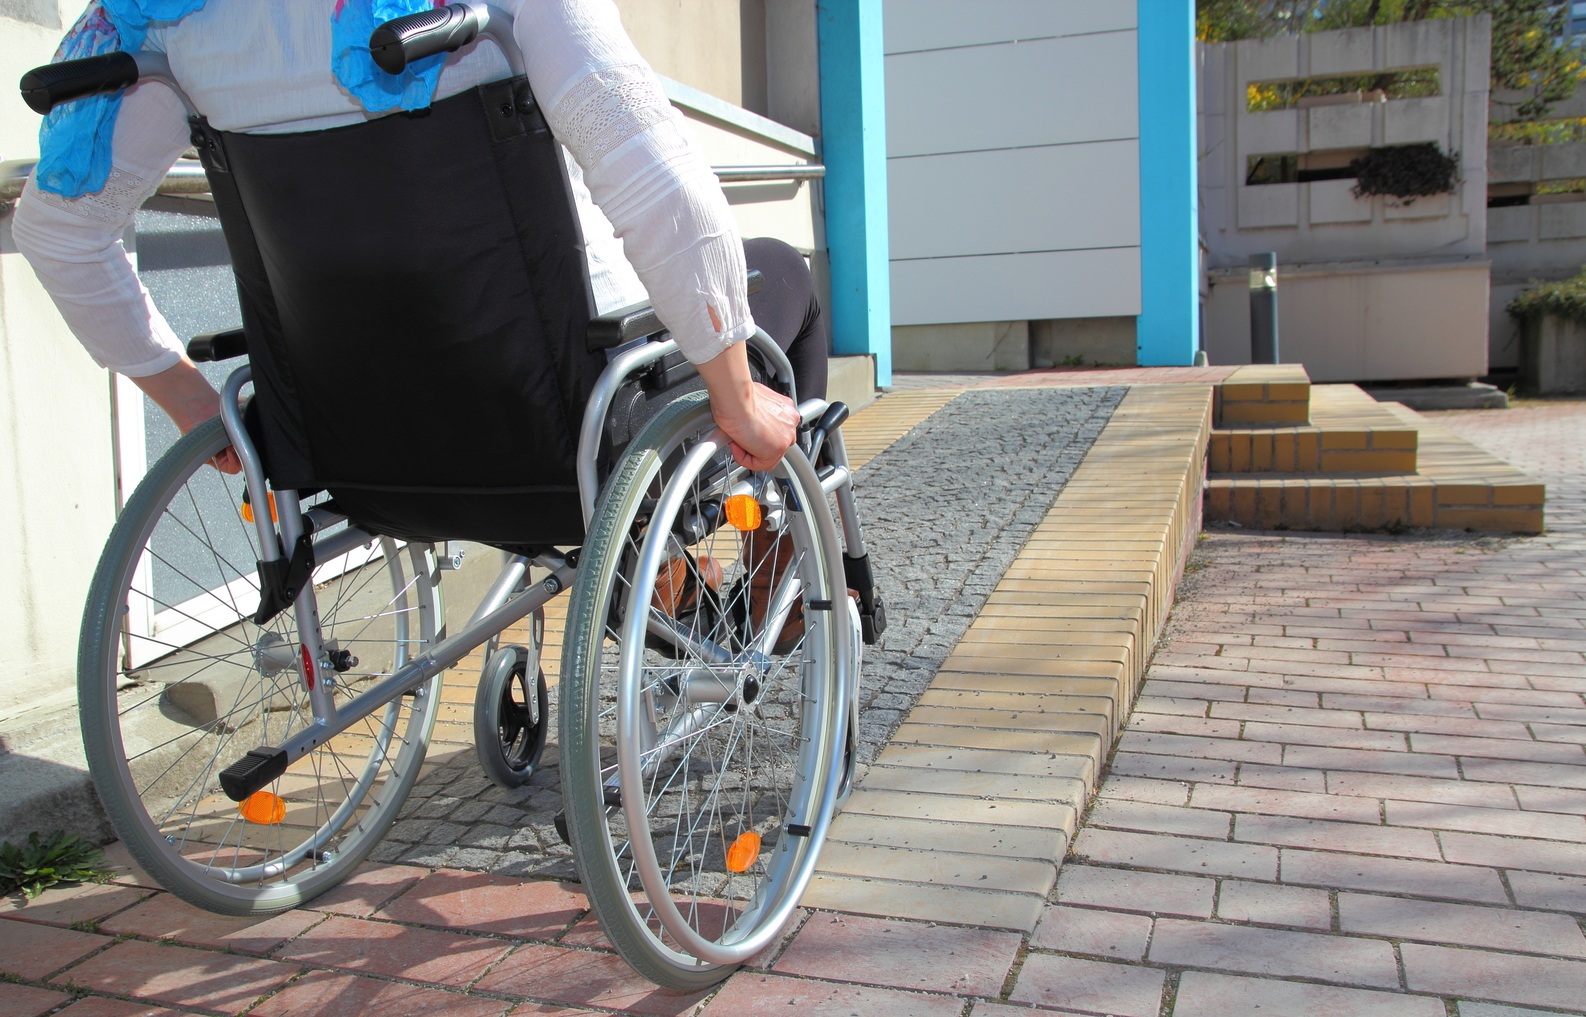 Man in a Wheelchair on a Ramp